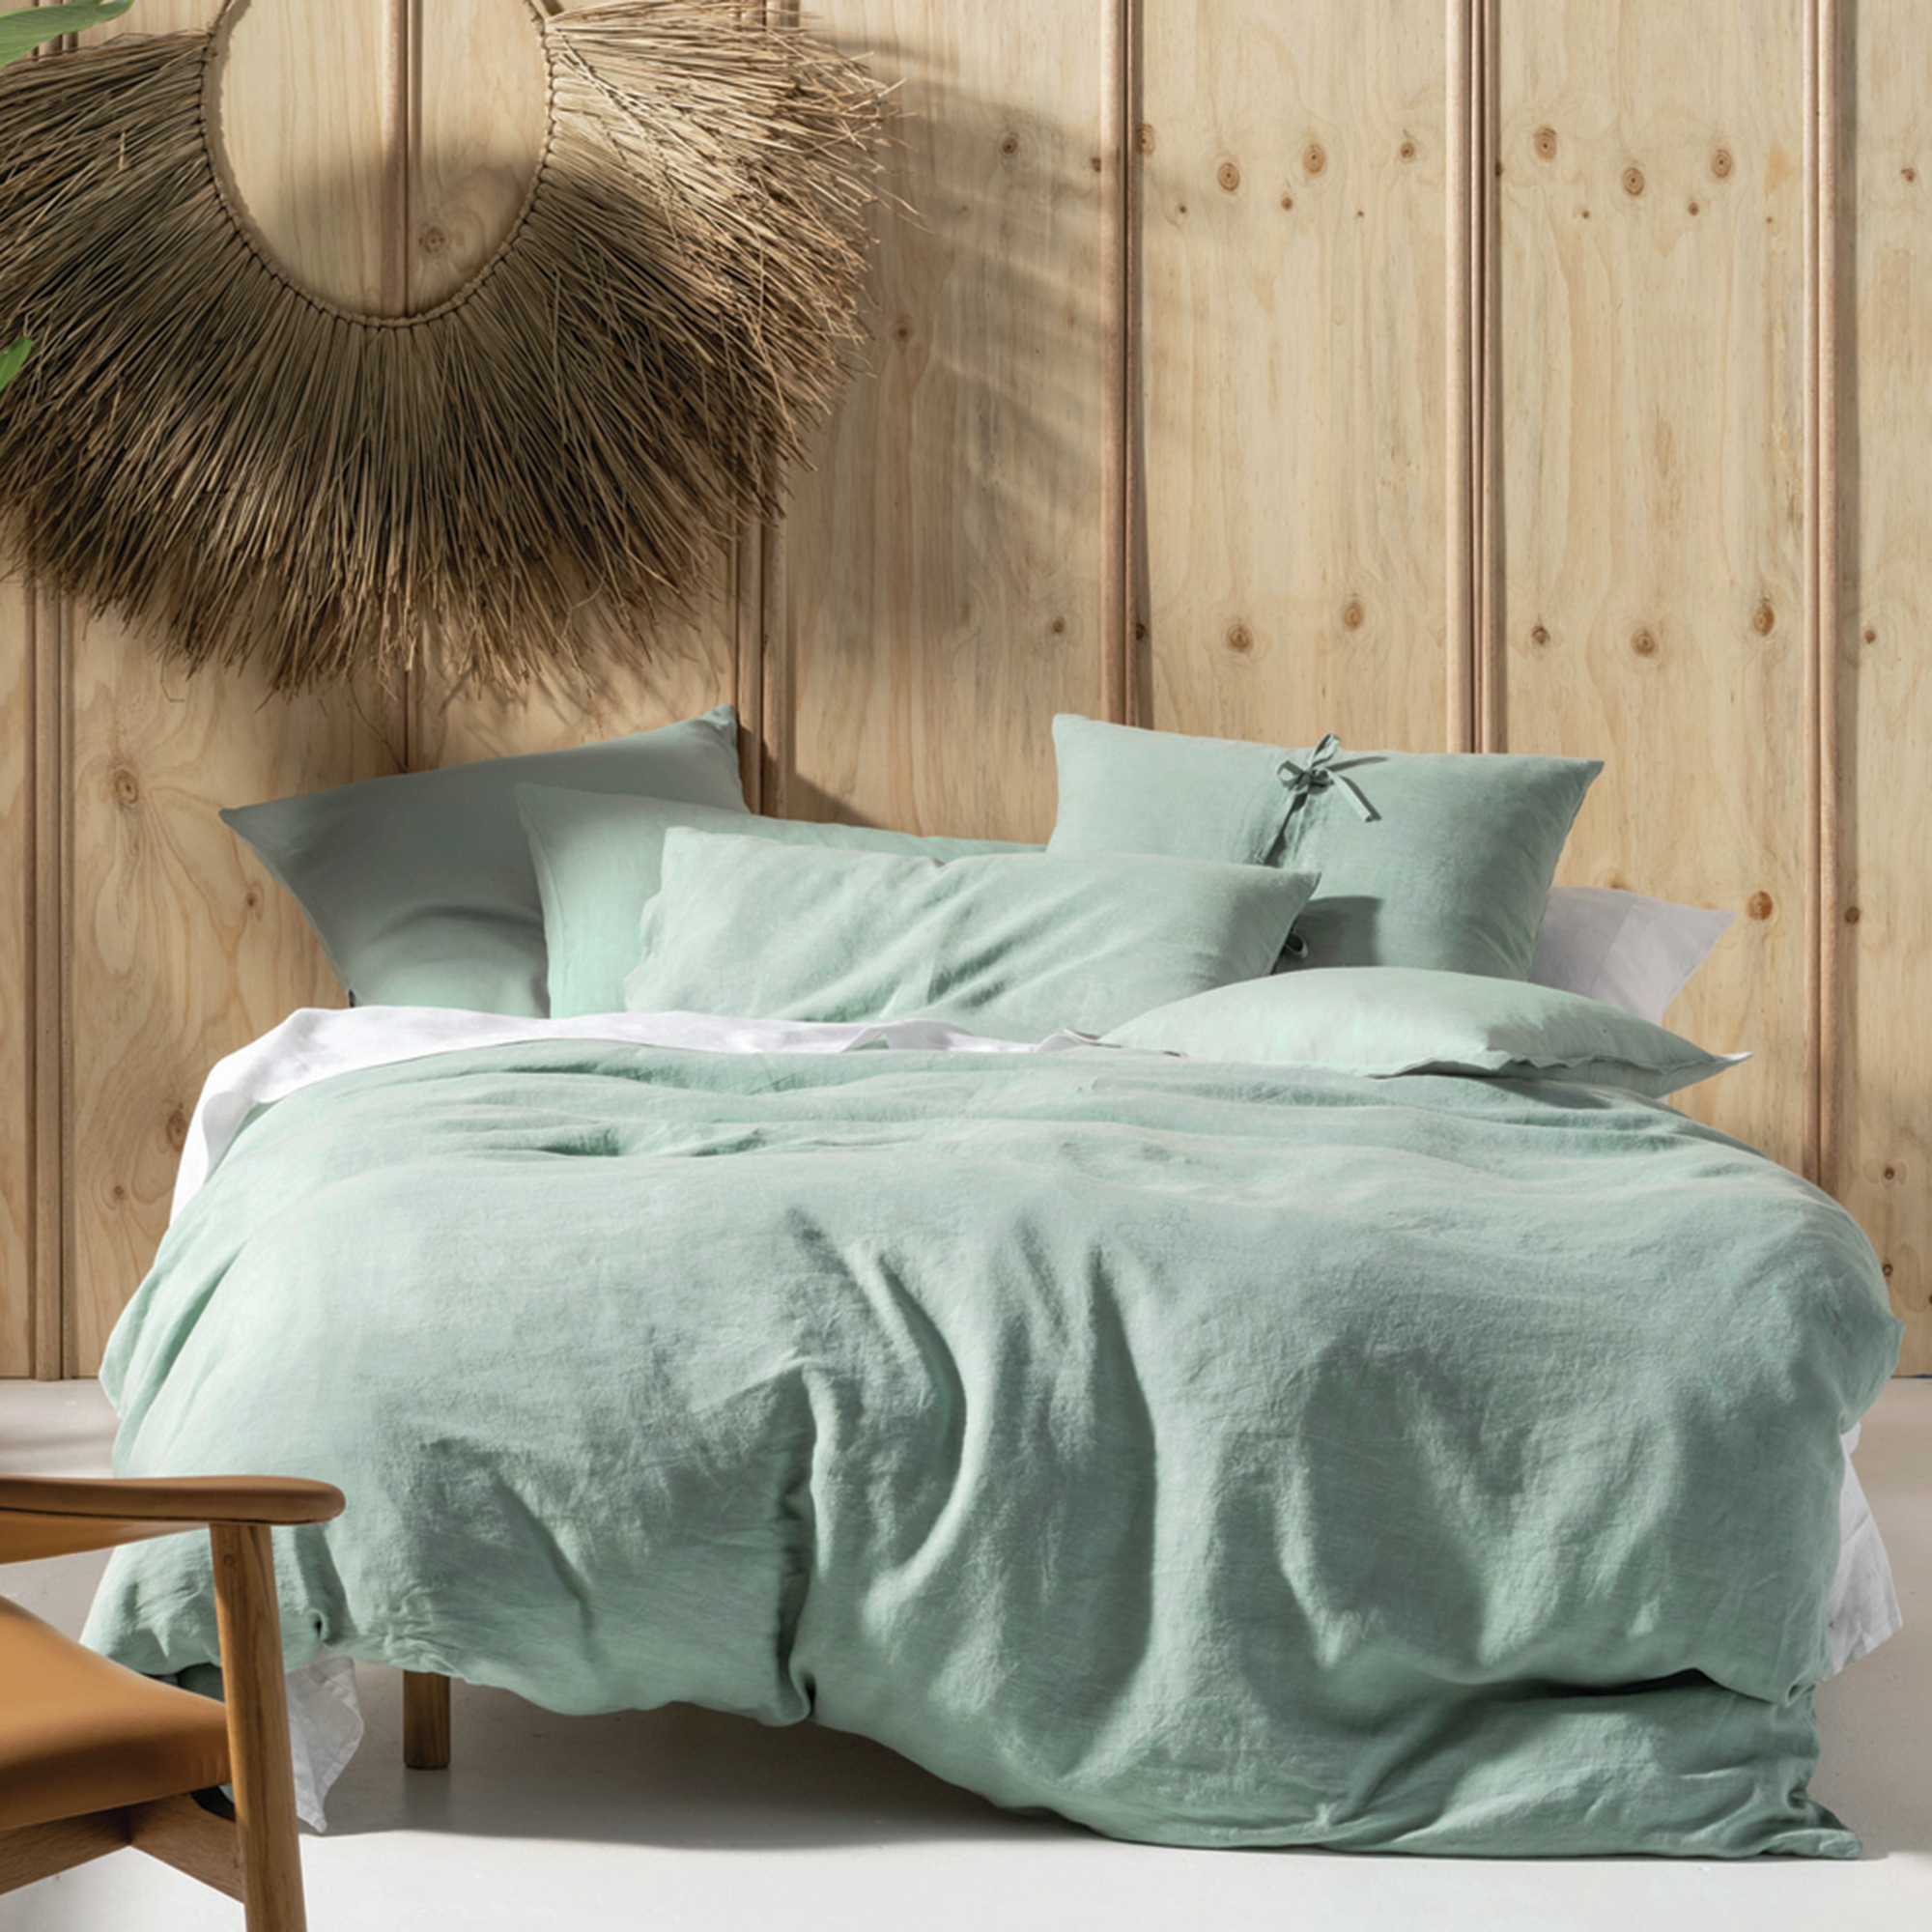 Linen House Nimes Wine Queen King Super King Quilt Cover Set